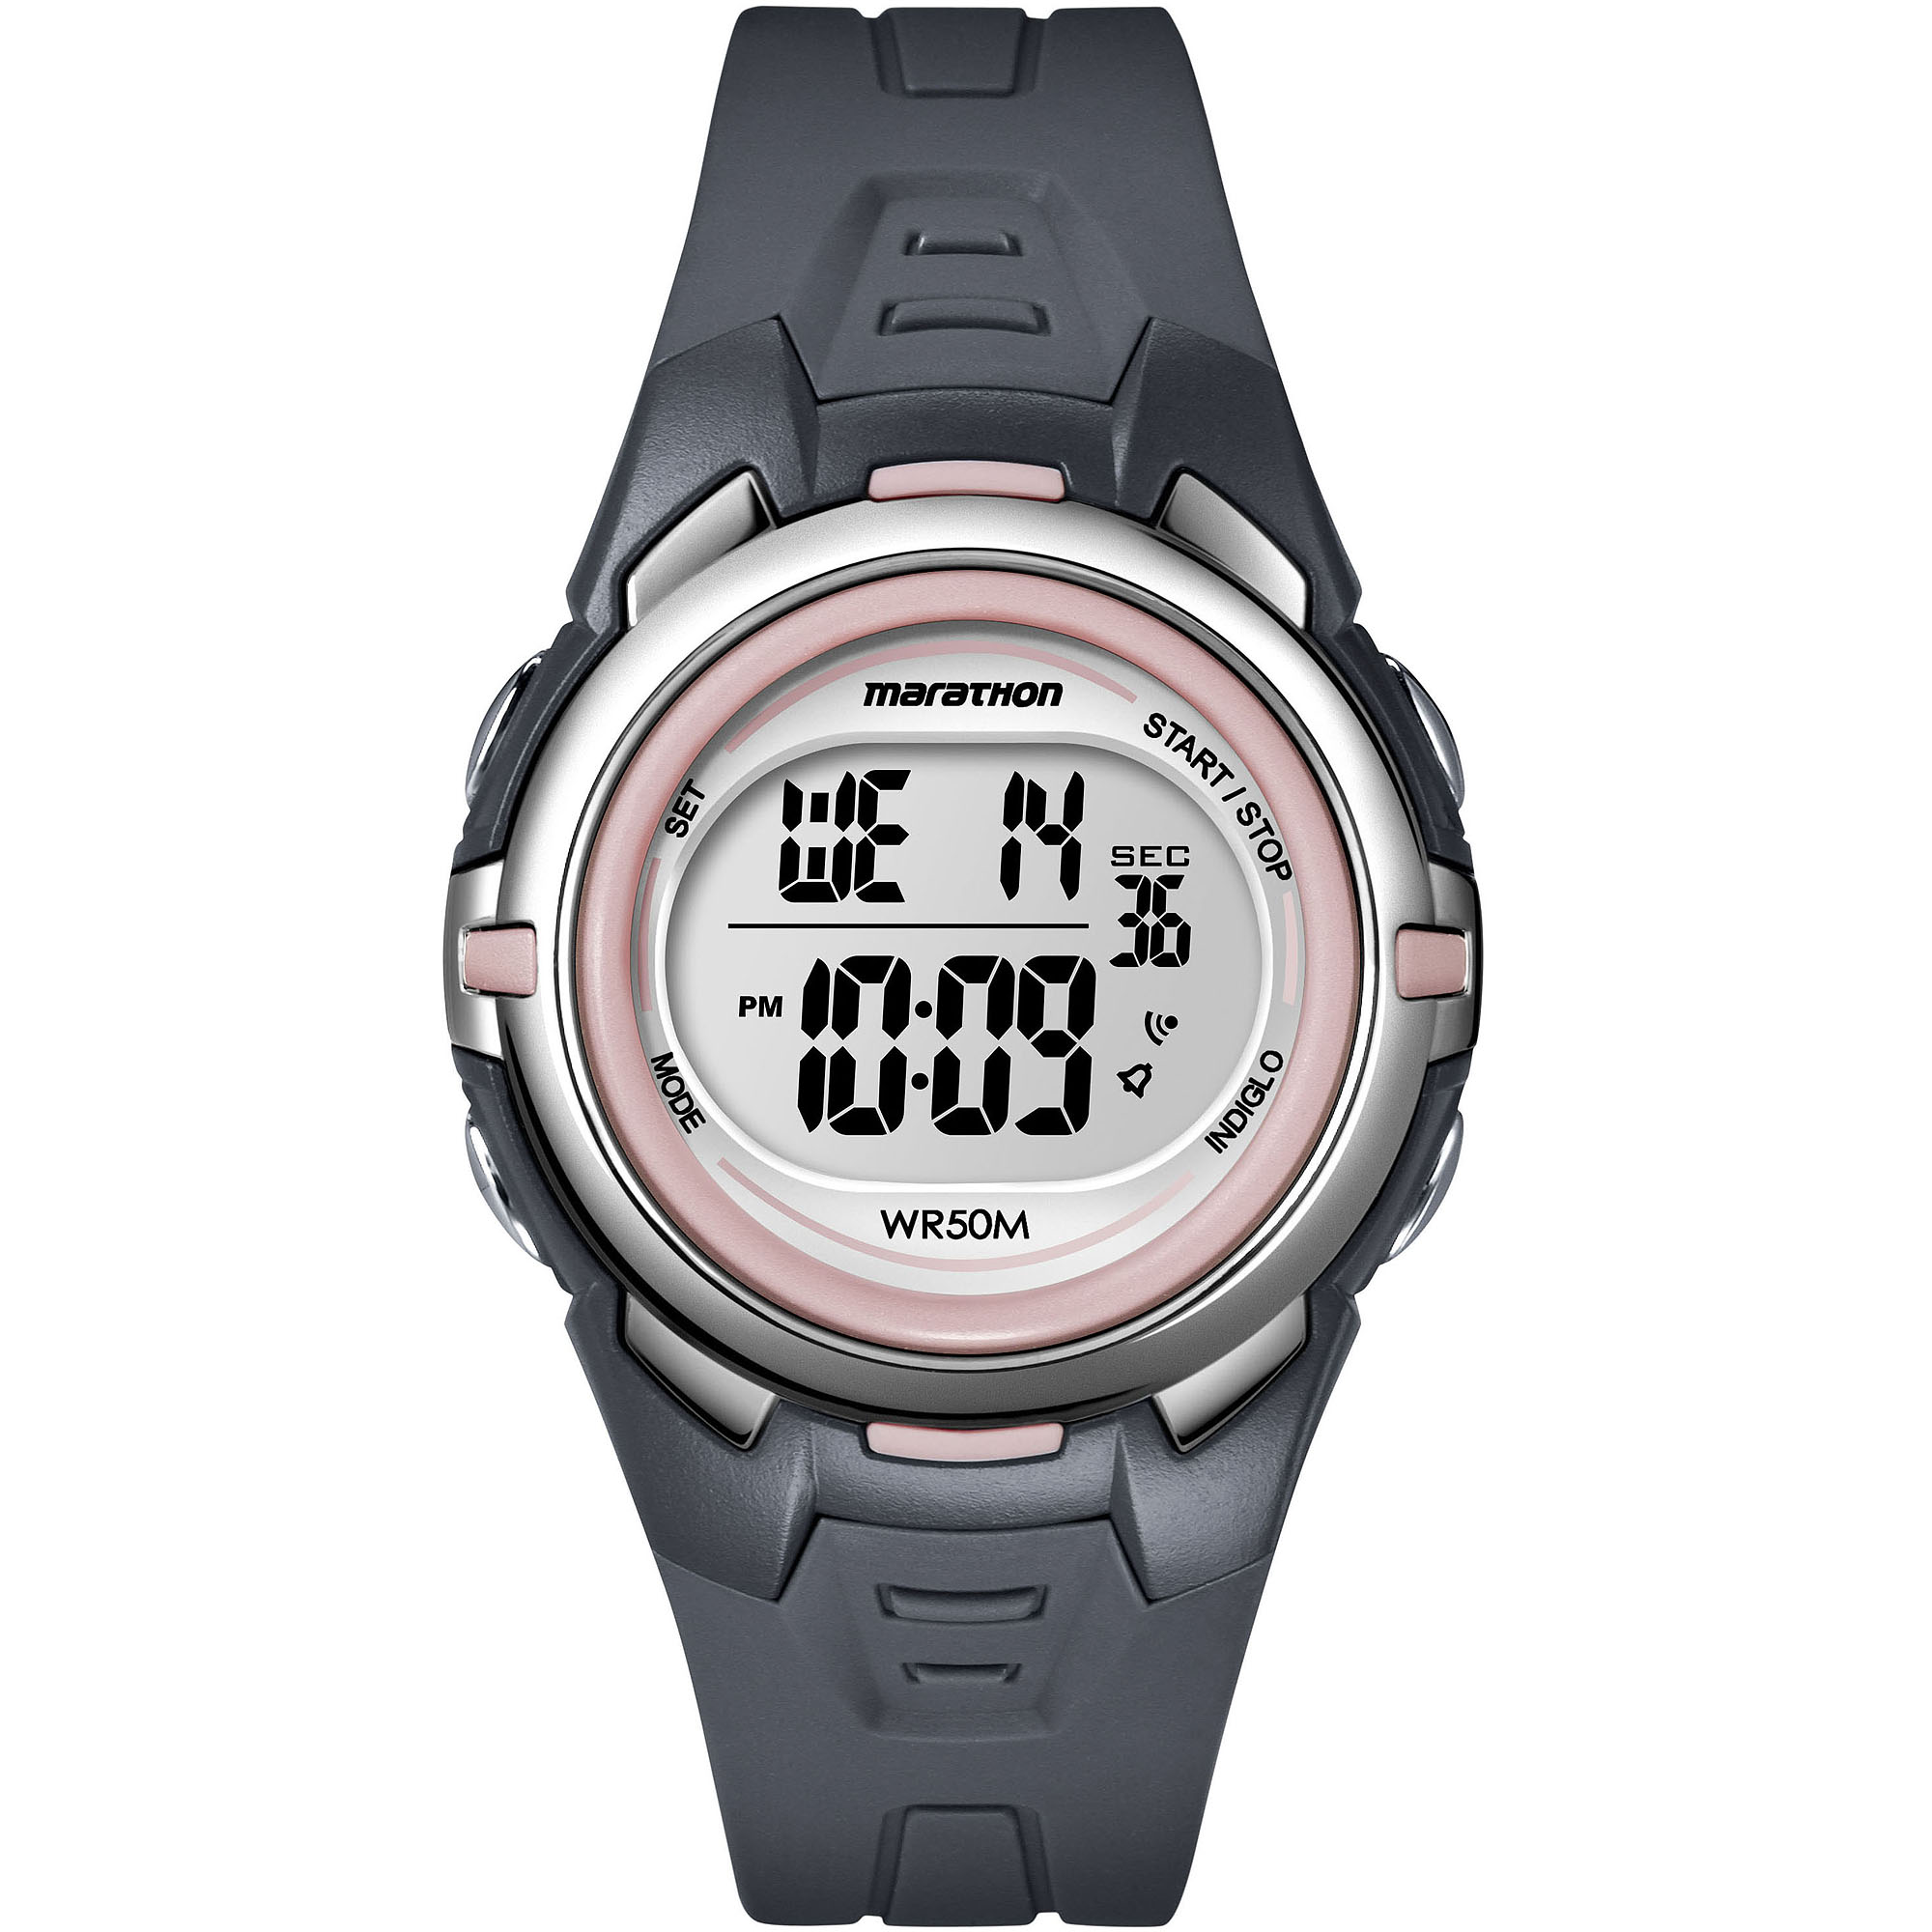 Marathon by Timex Women's Digital Mid-Size Watch, Dark Gray Resin Strap